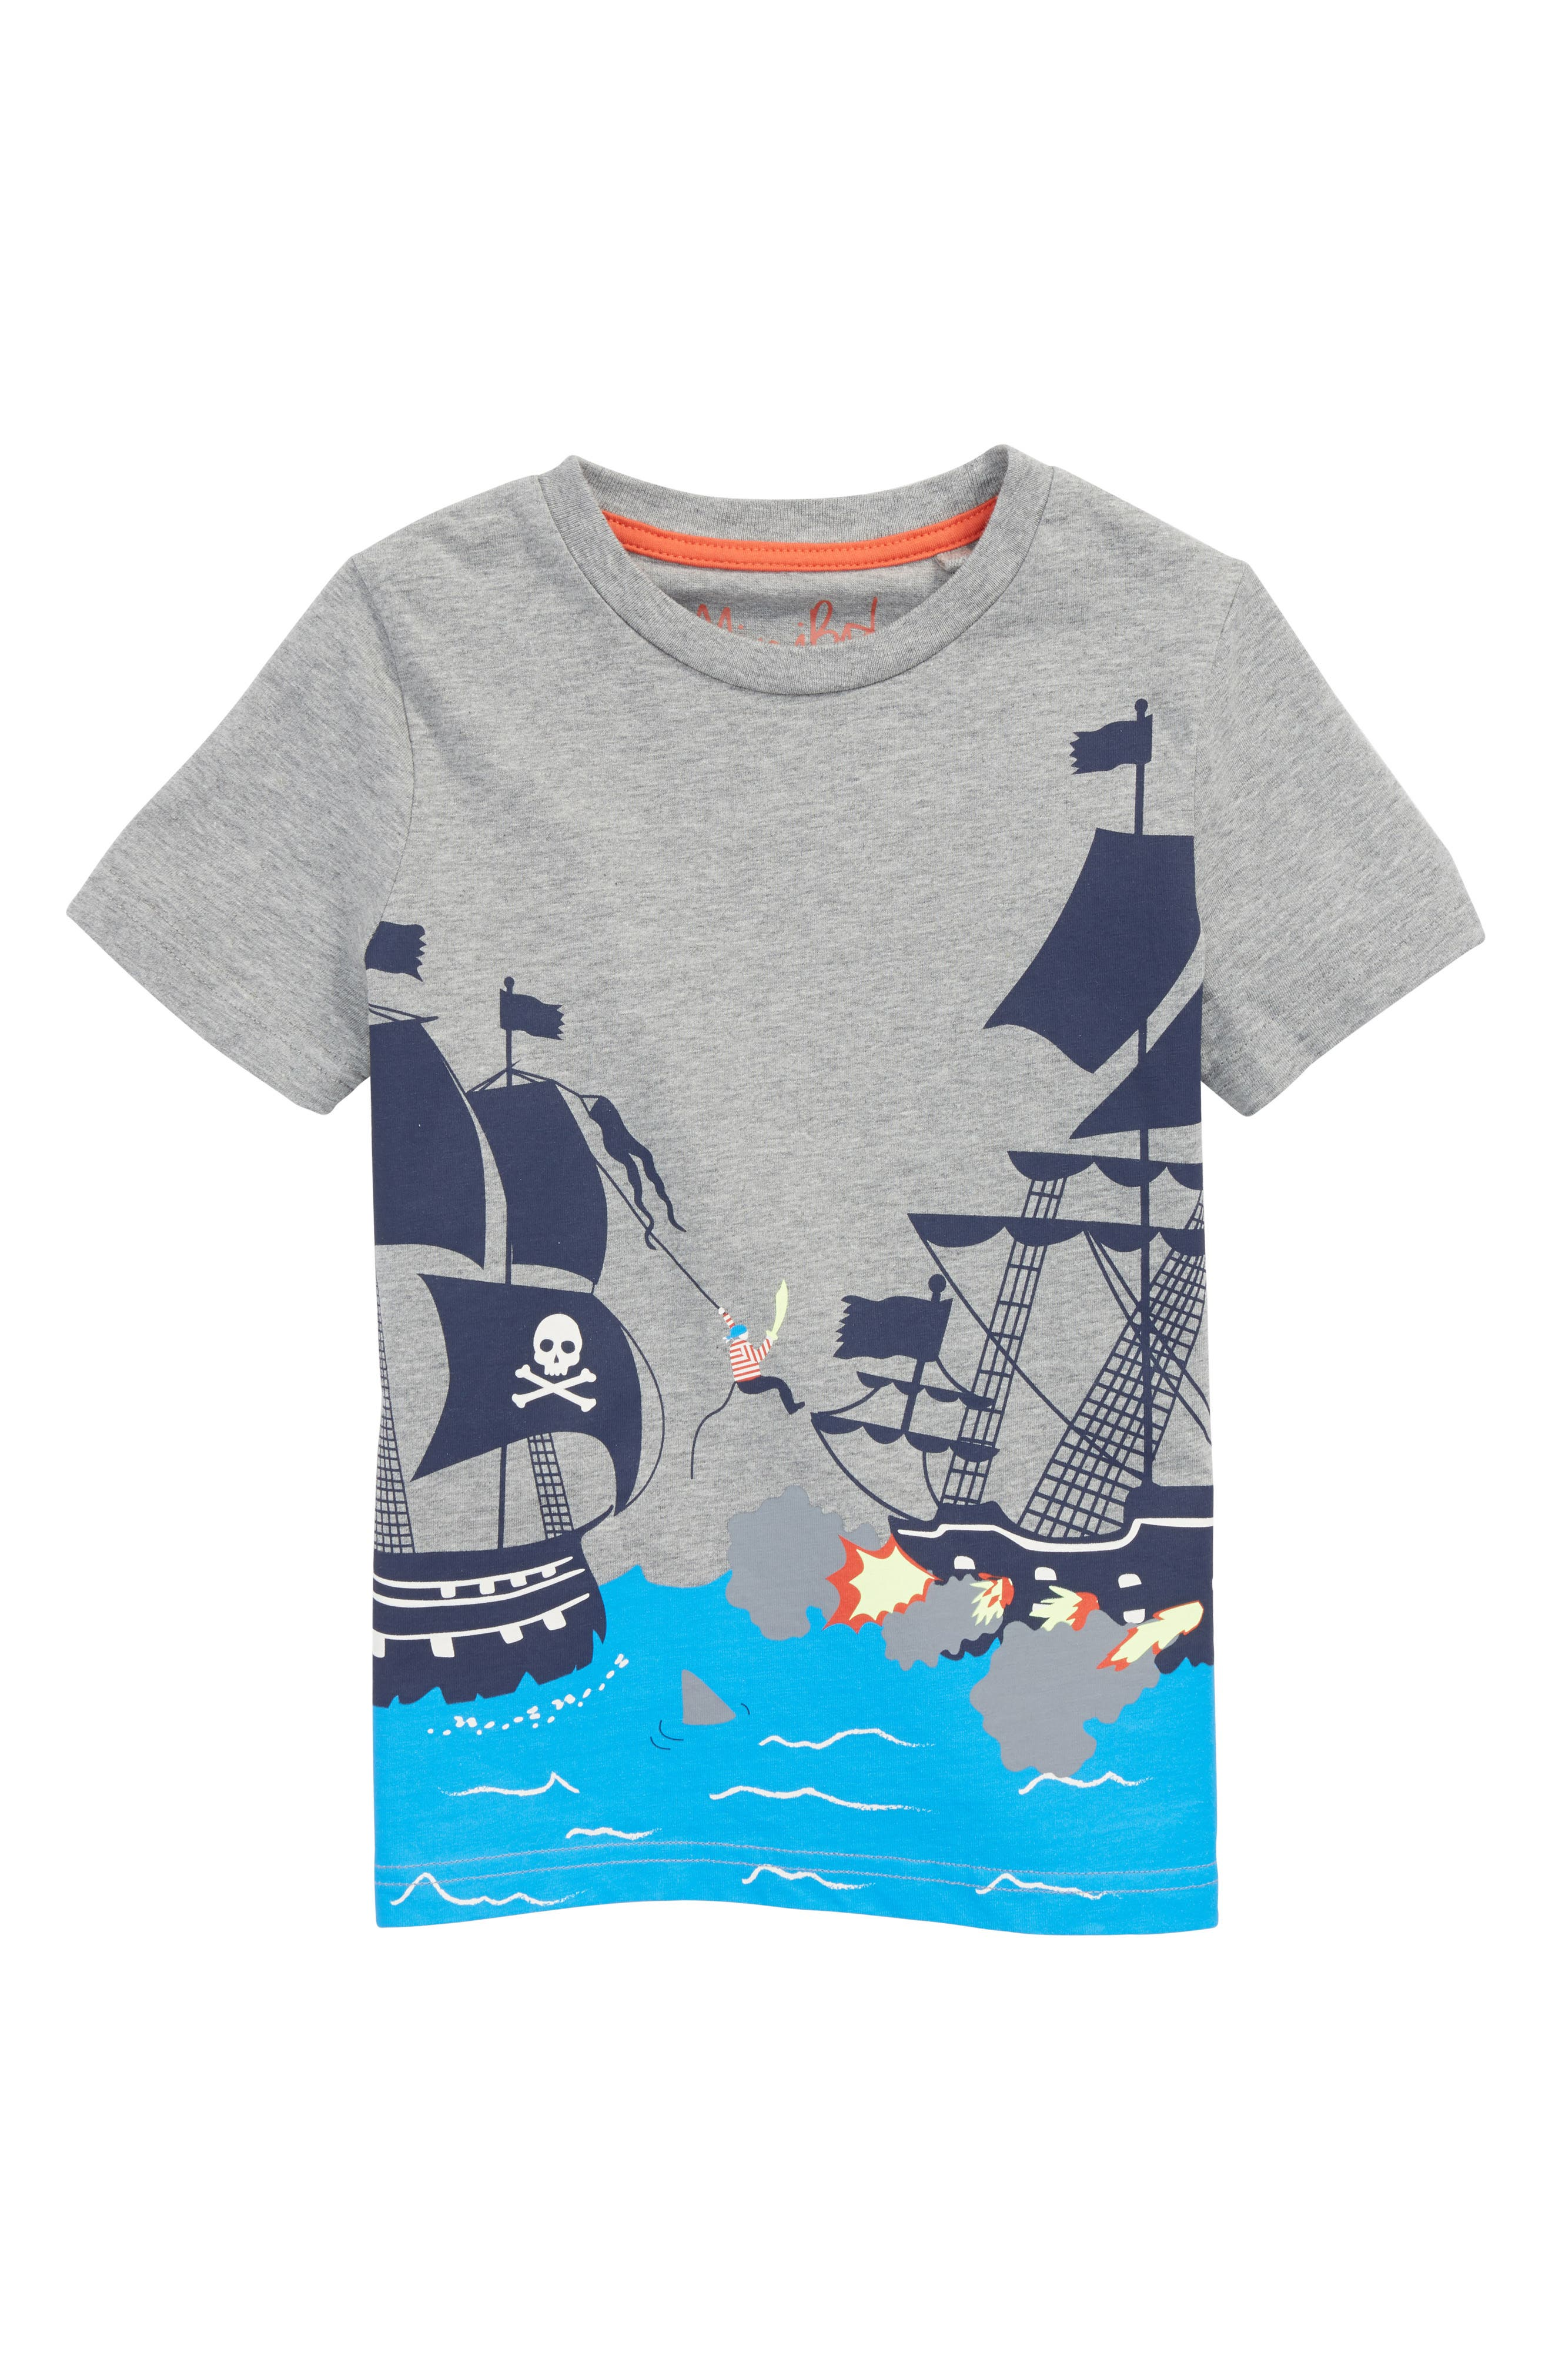 Pirate Warfare T-Shirt,                             Main thumbnail 1, color,                             034